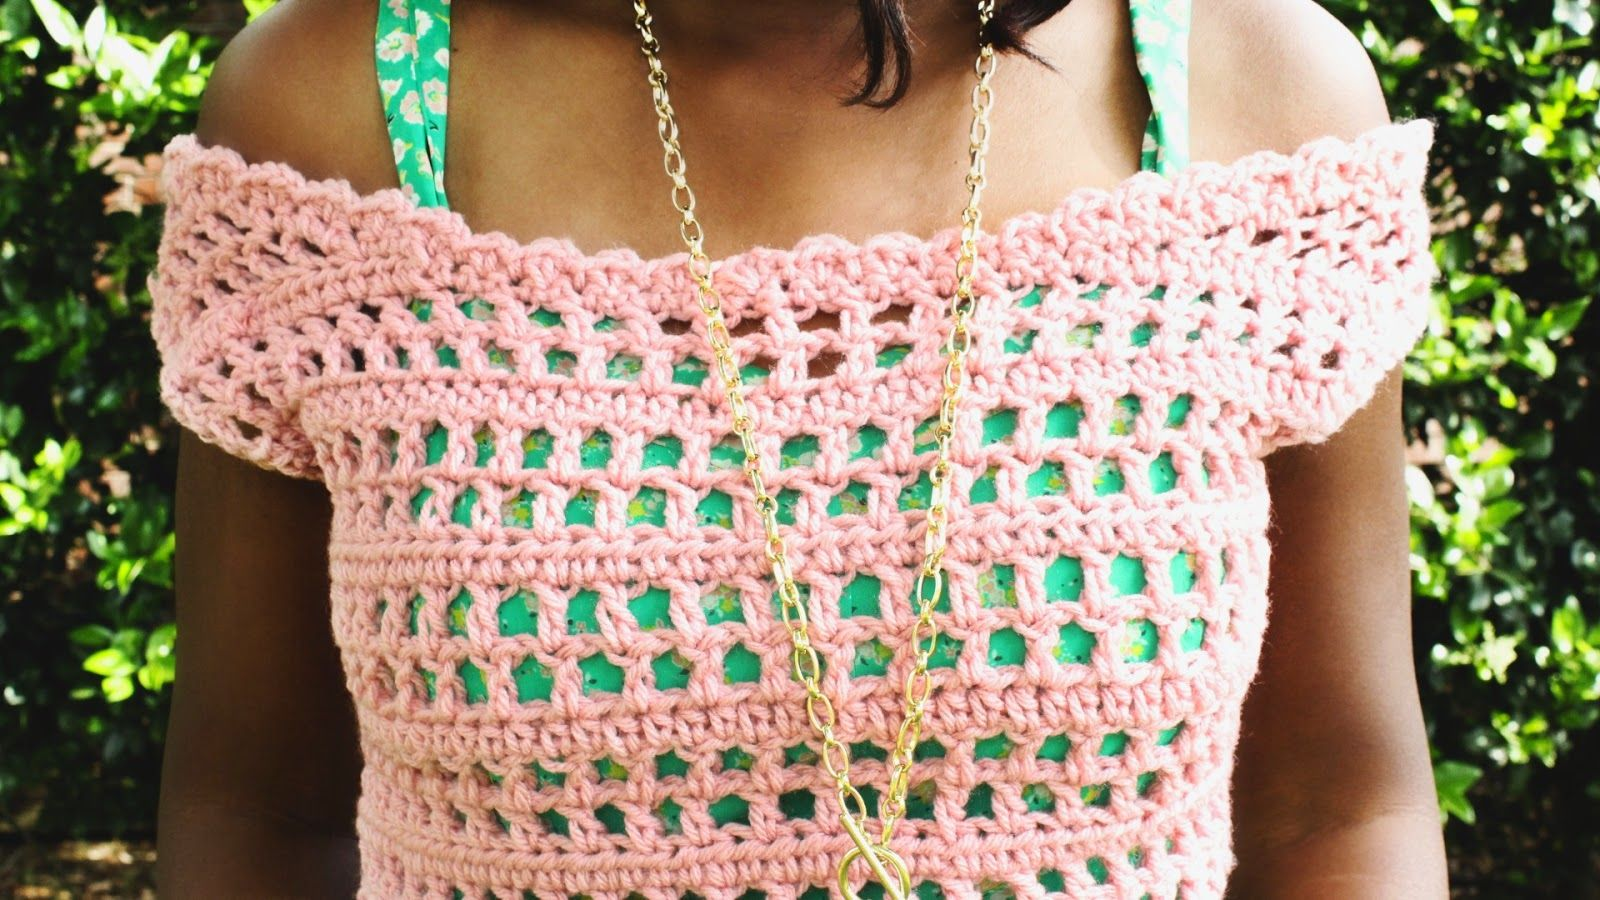 the dream crochet blog.: DIY: How To Crochet An Off The Shoulder Top ...